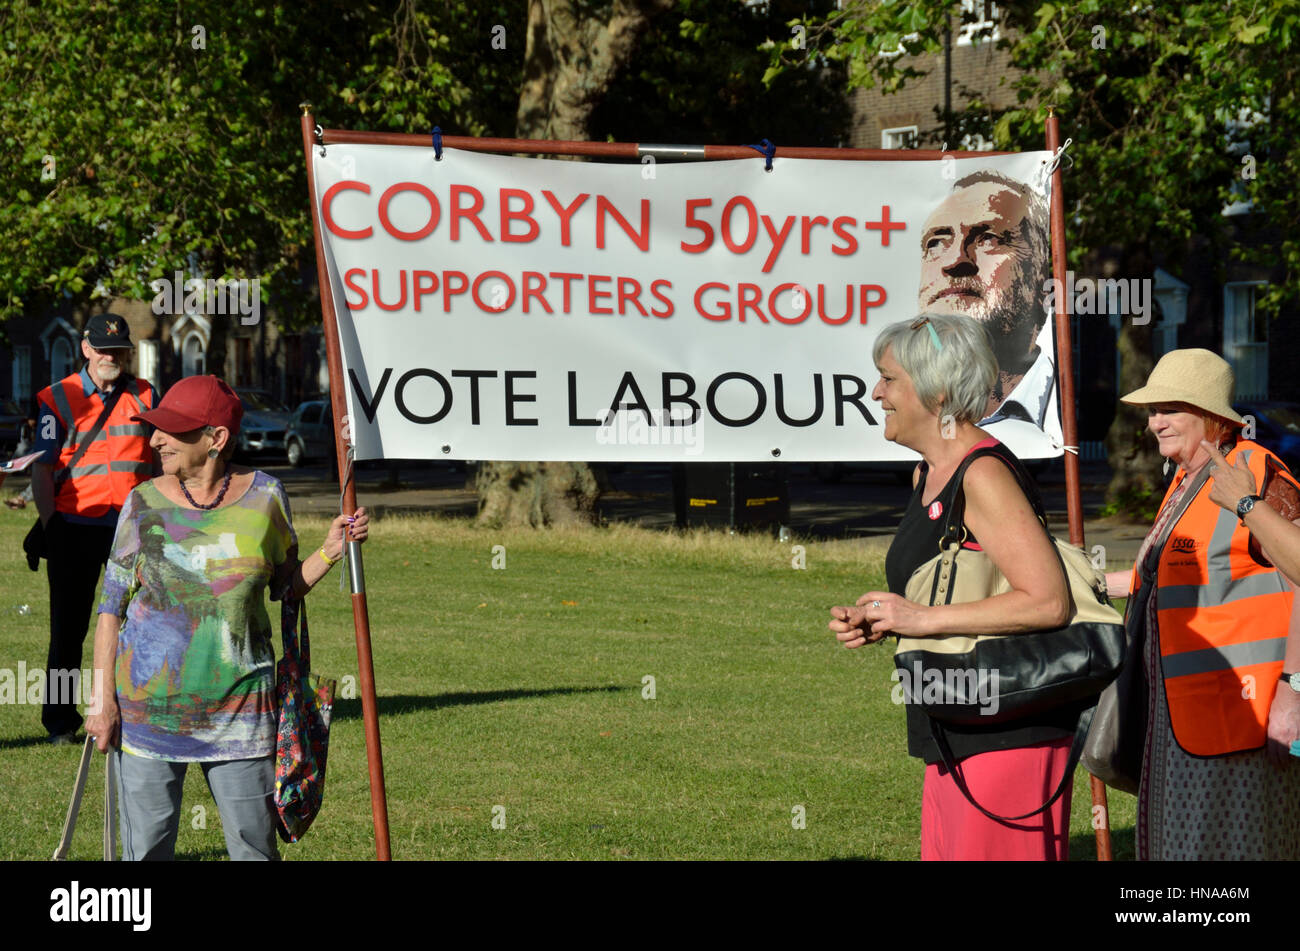 Jeremy Corbyn 50 Years Plus Labour Party Supporters Group banner at a rally - Stock Image